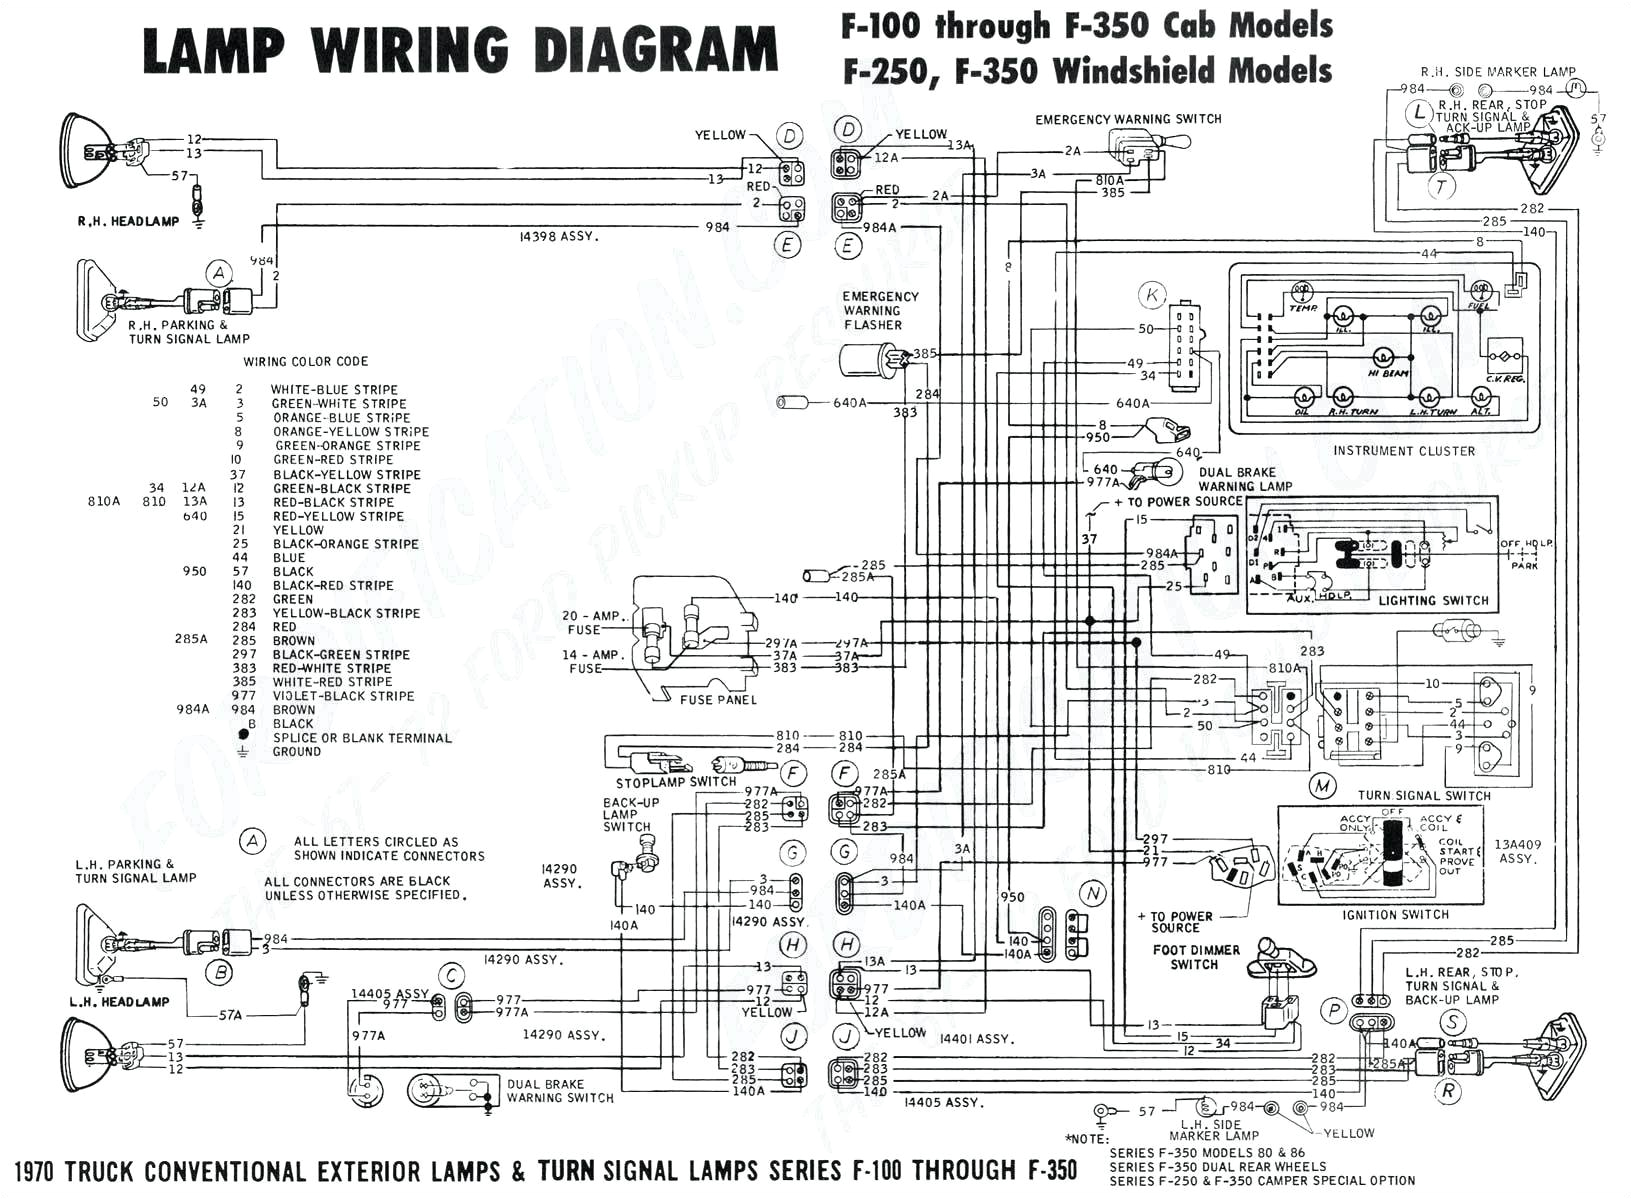 dimmer switch wiring diagram 95 impala home wiring diagram 1995 firebird wiring diagram on dual dimmer switch wiring diagram